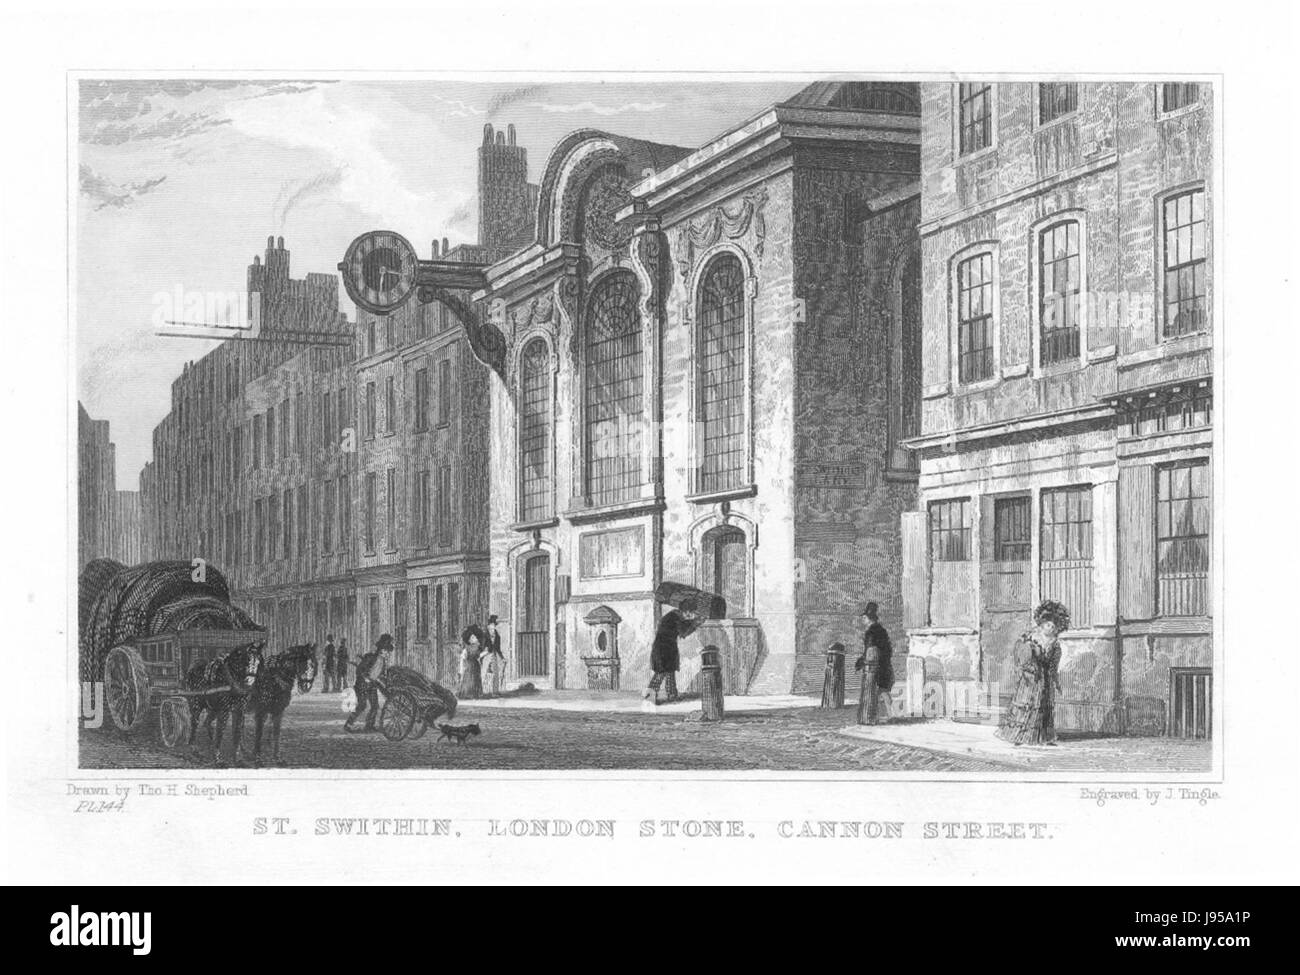 St Swithins London Stone church 1831 Stock Photo